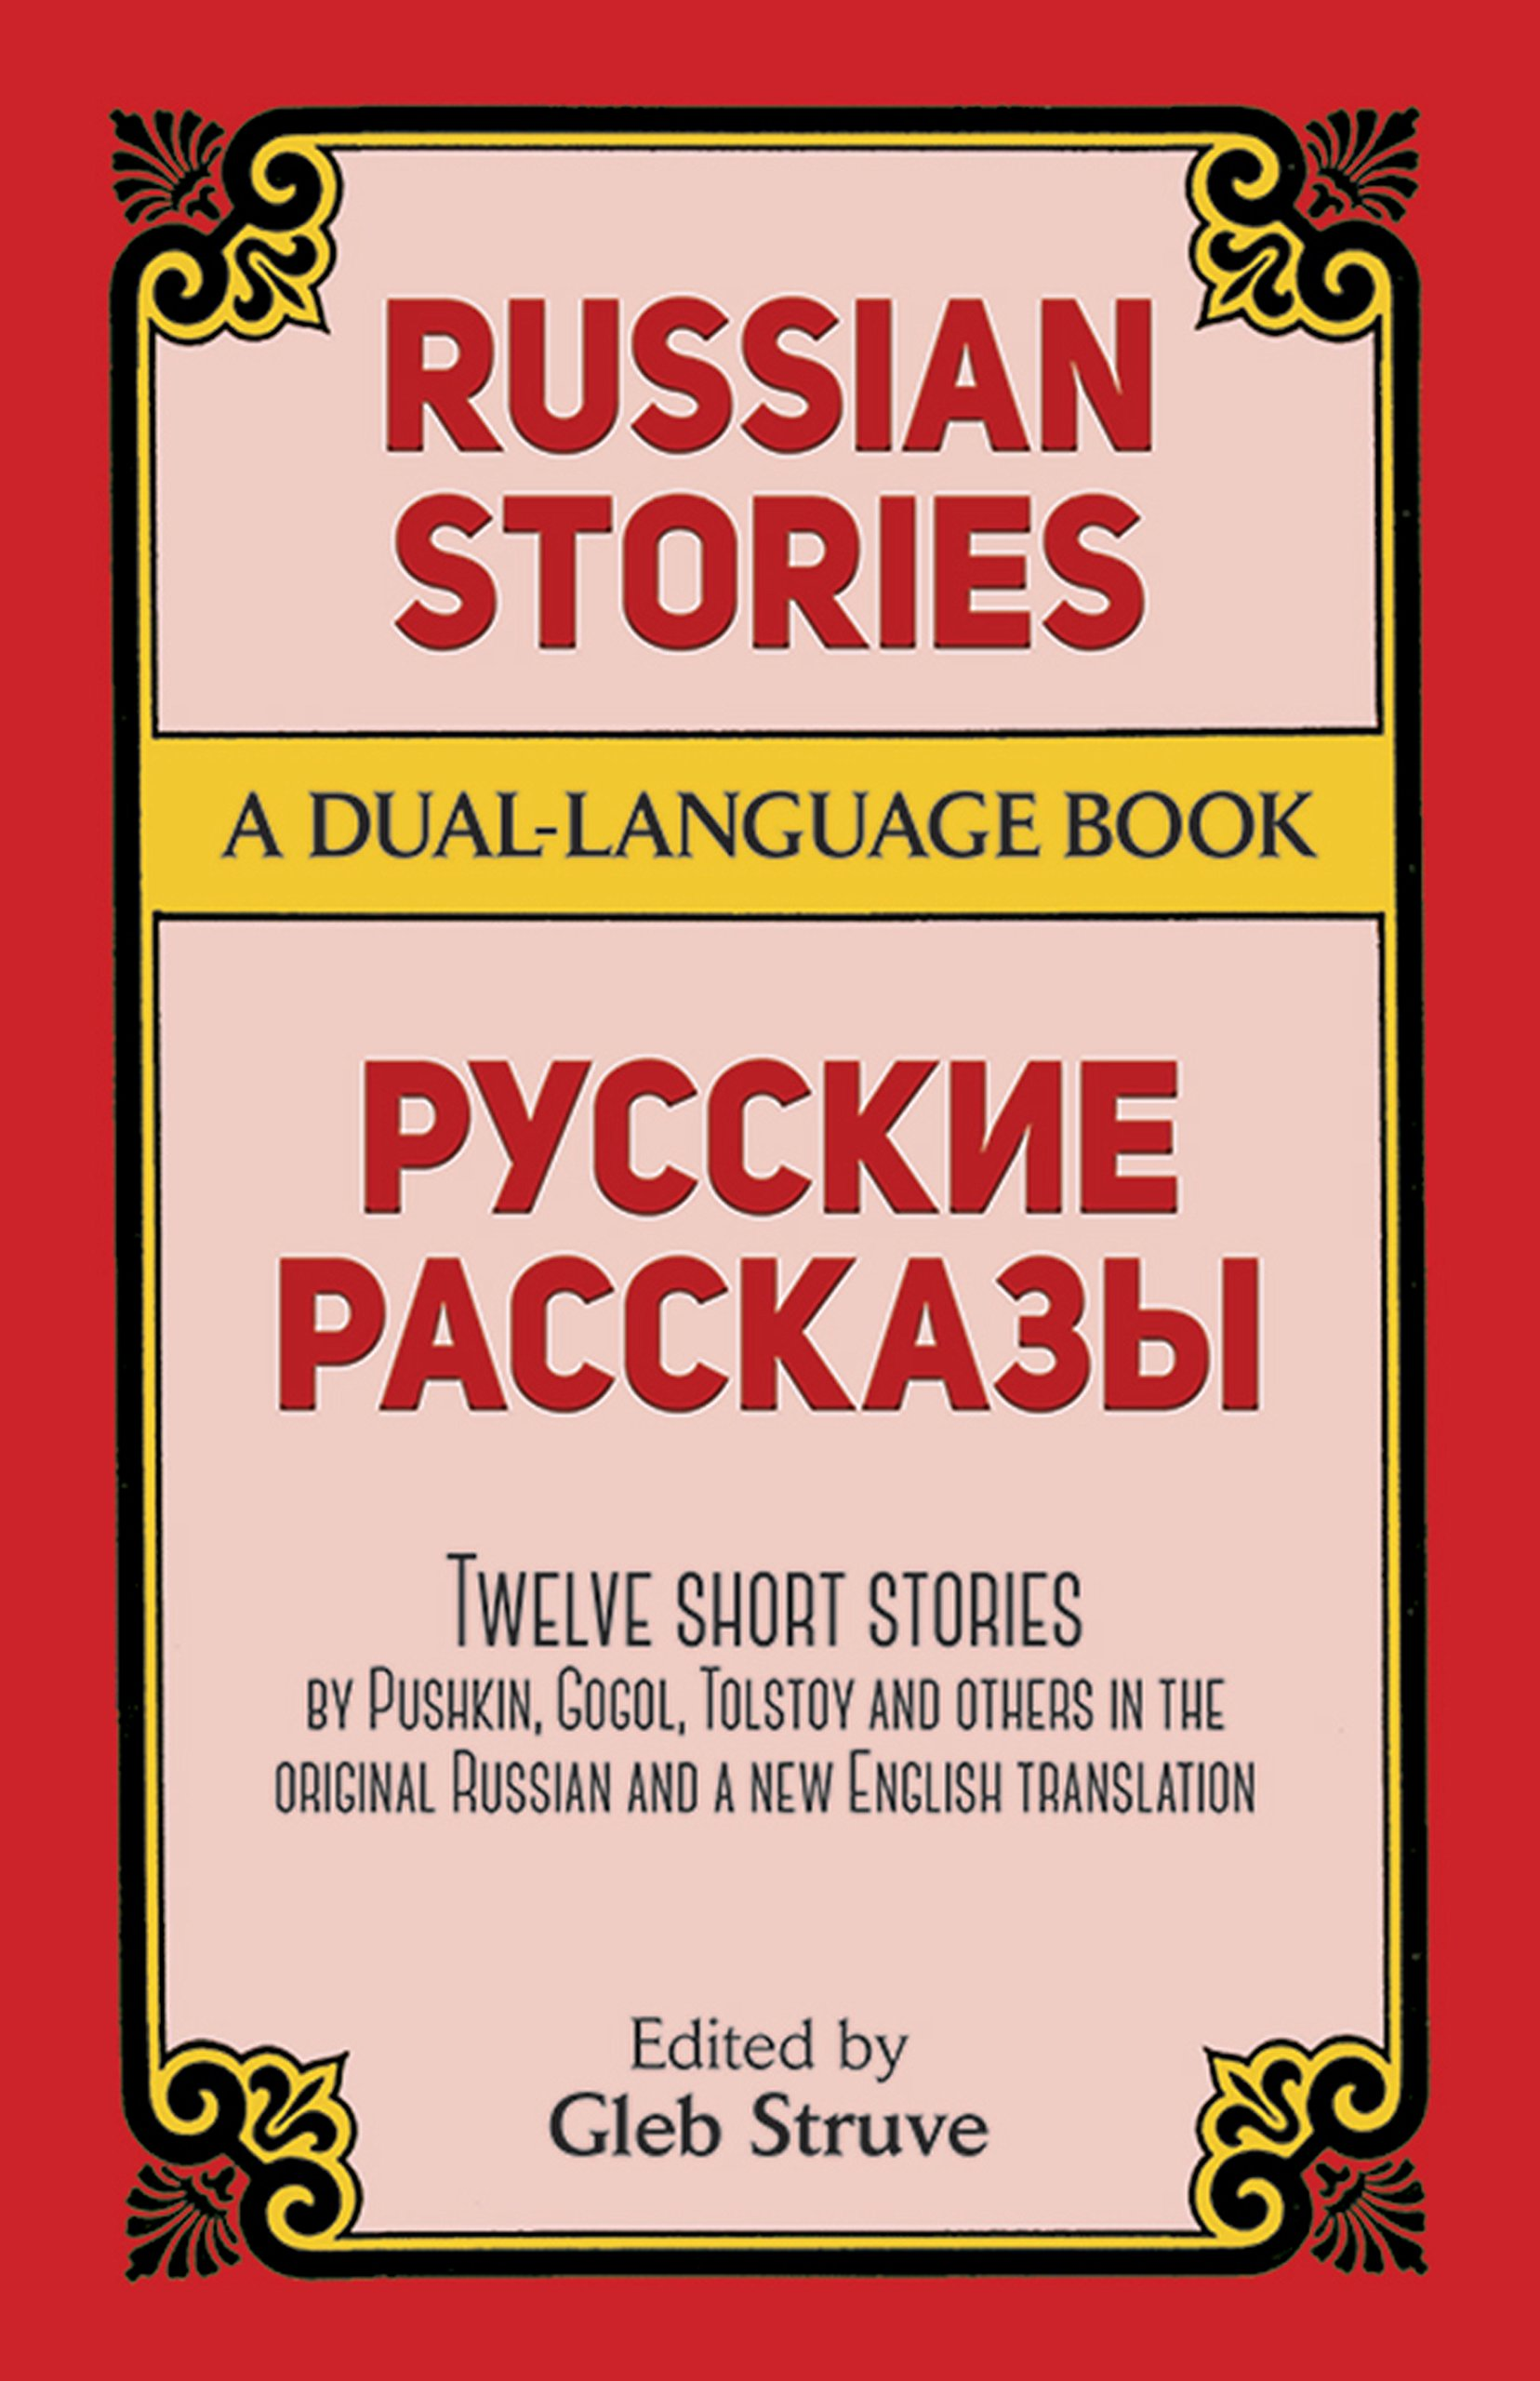 Russian Stories: A Dual-Language Book (English and Russian Edition) by imusti